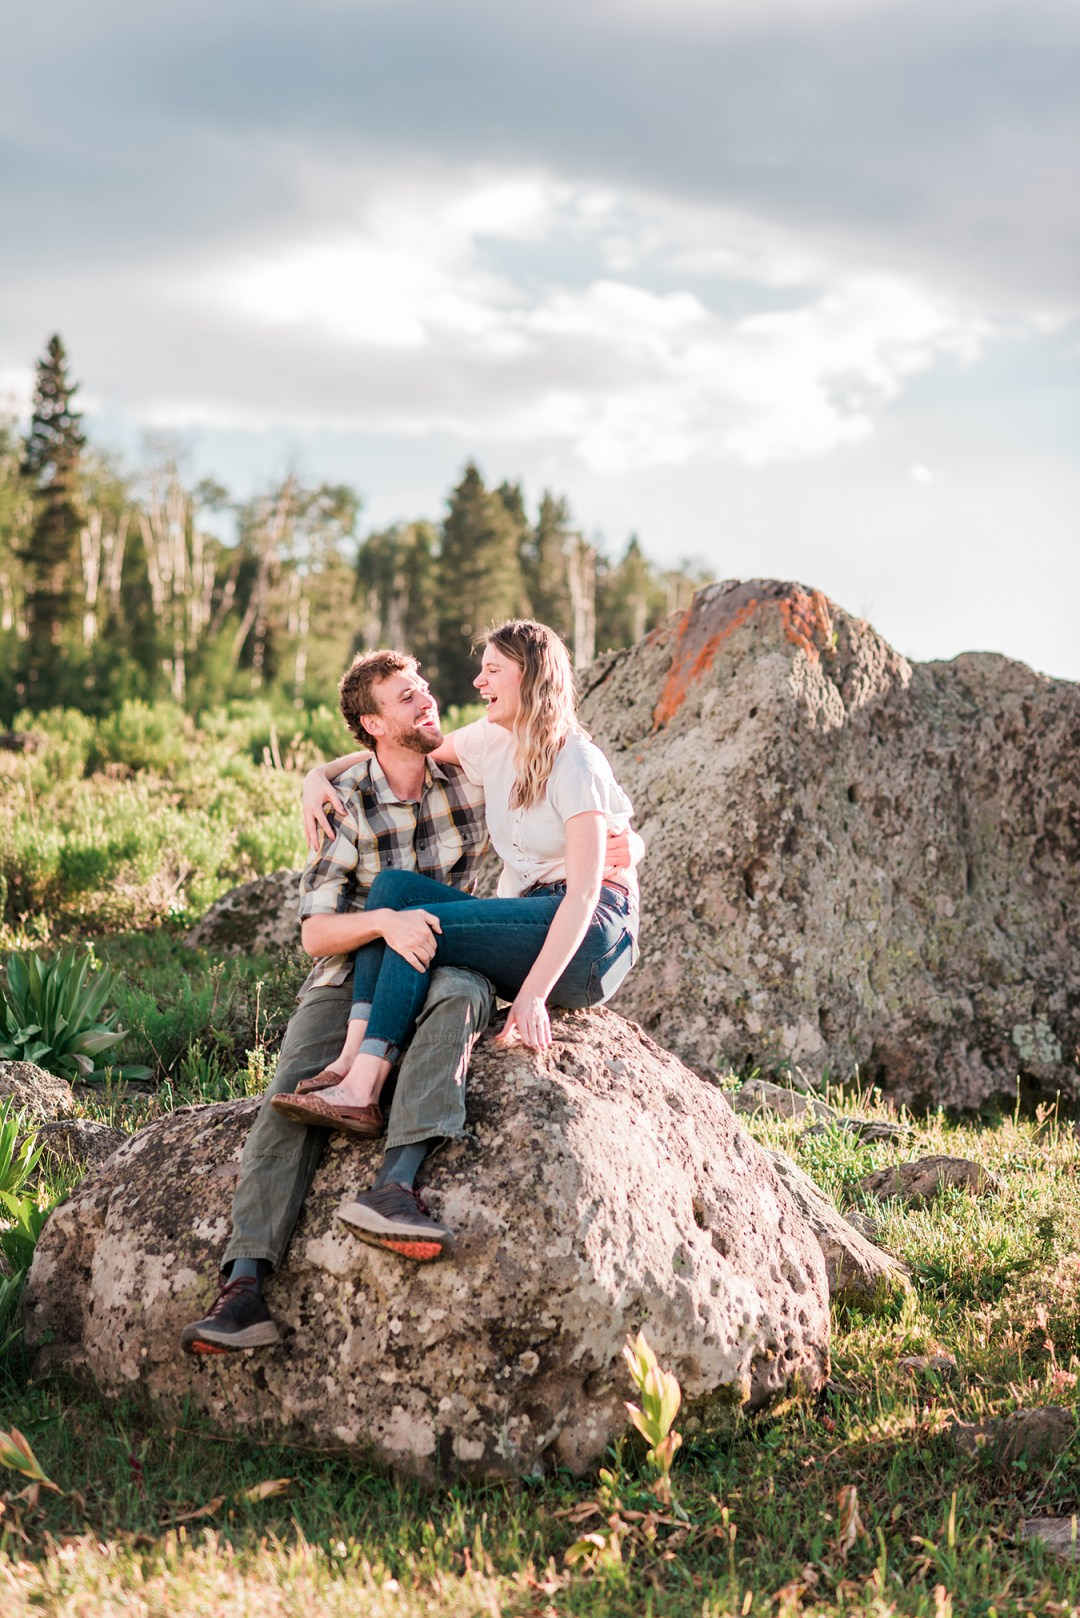 Annie & Taylor sitting on a boulder for their Glenwood Springs Engagement Photos